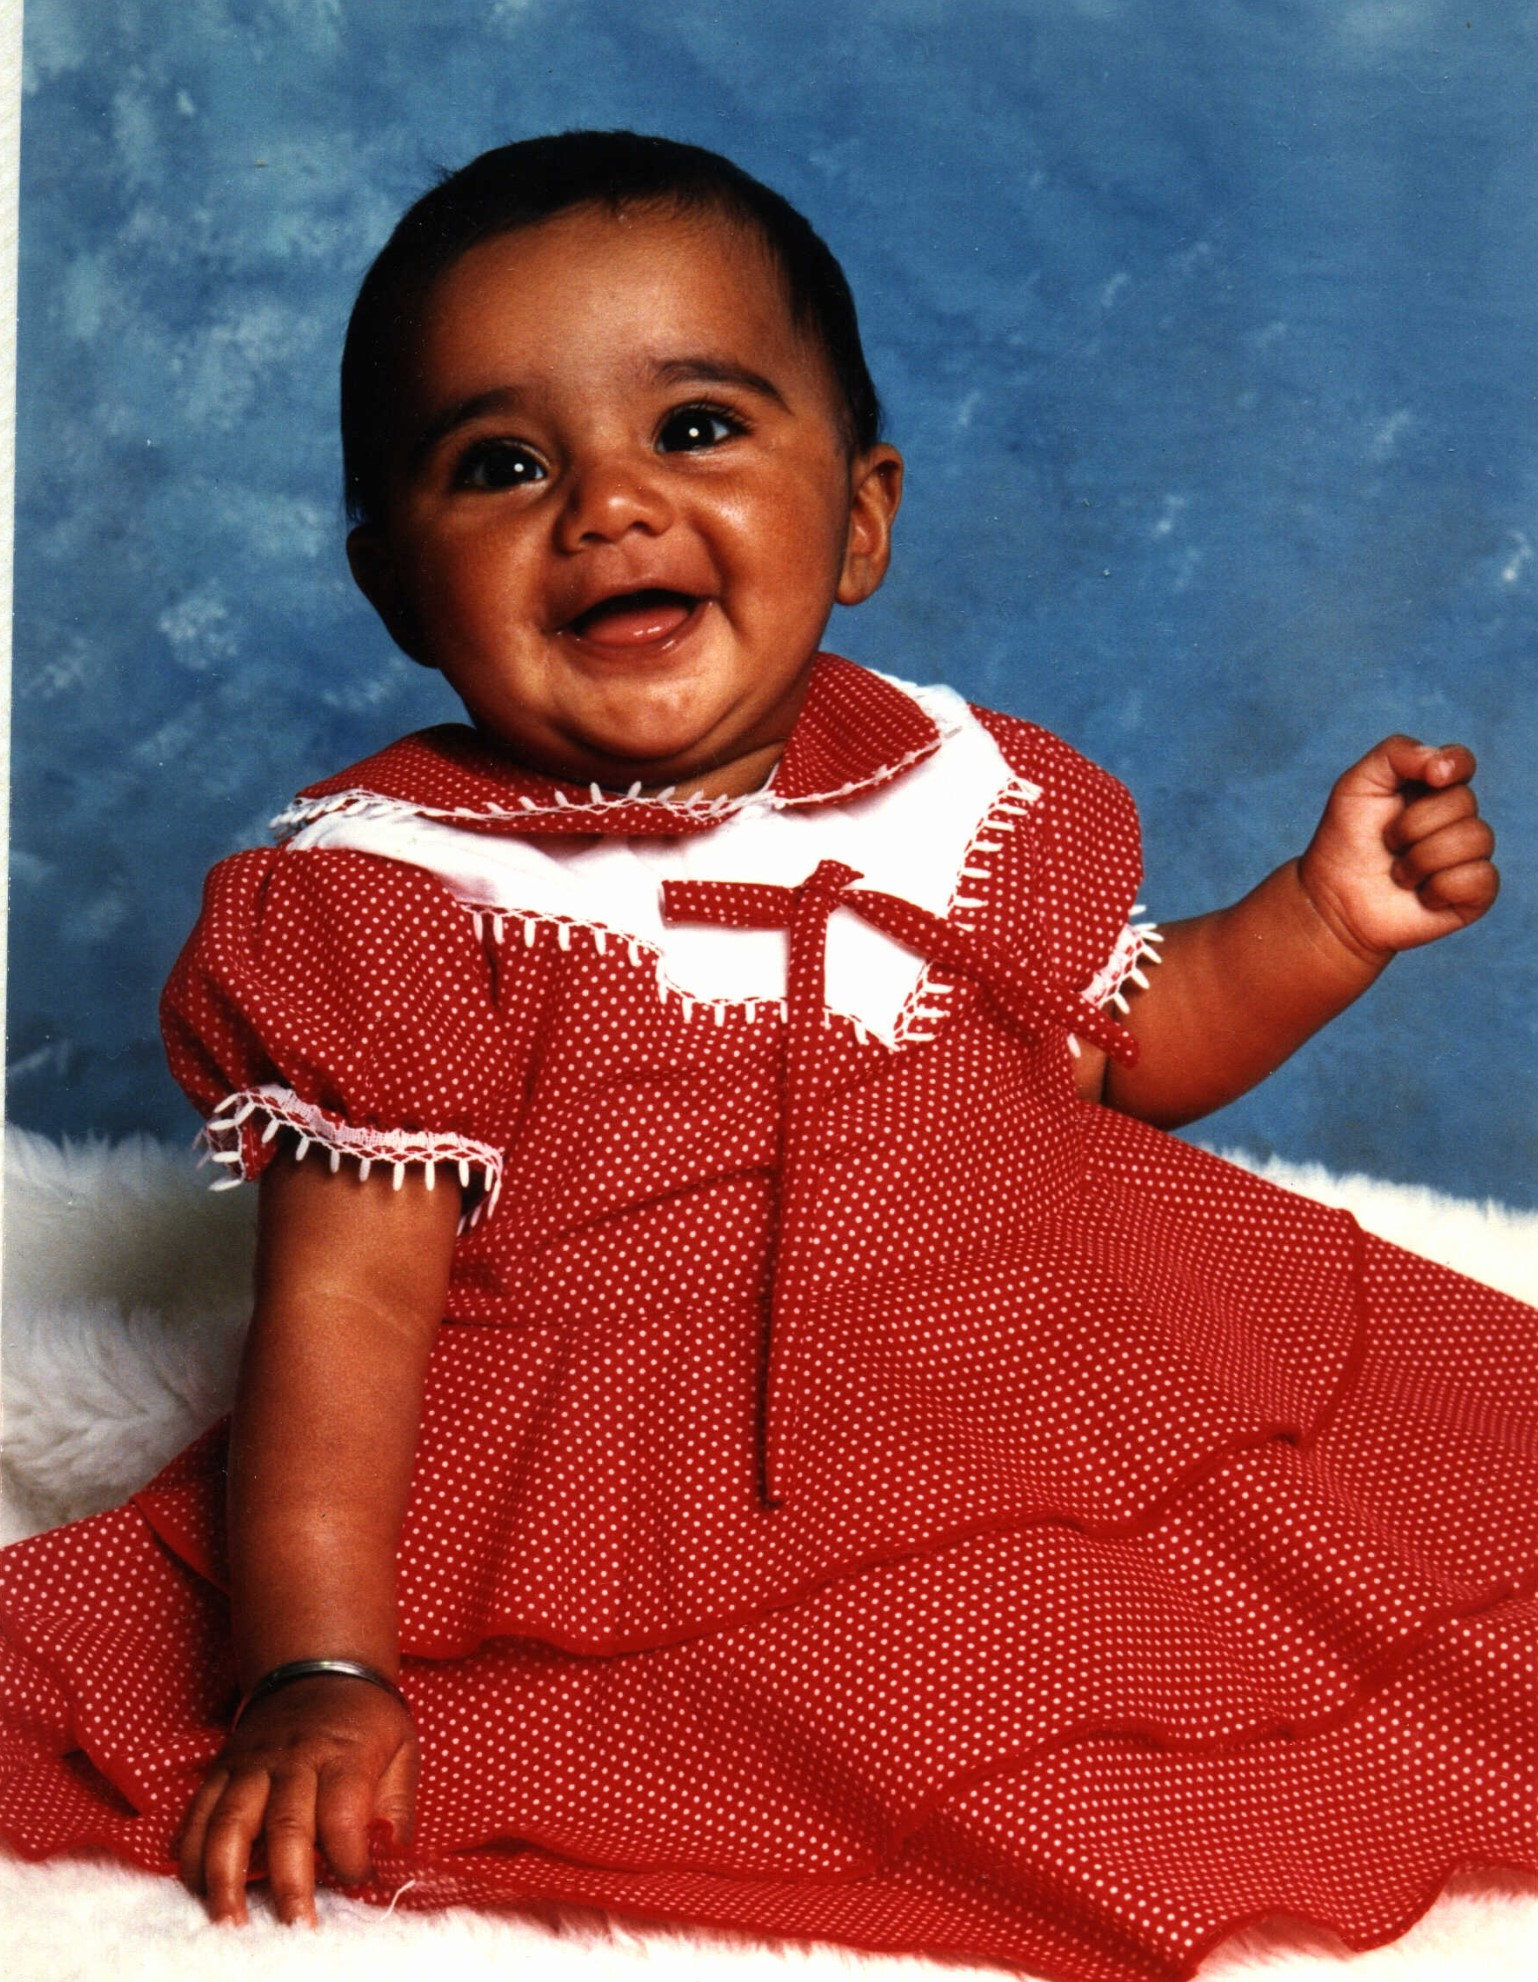 Suki's first daughter rocking a red frilly dress and smile.